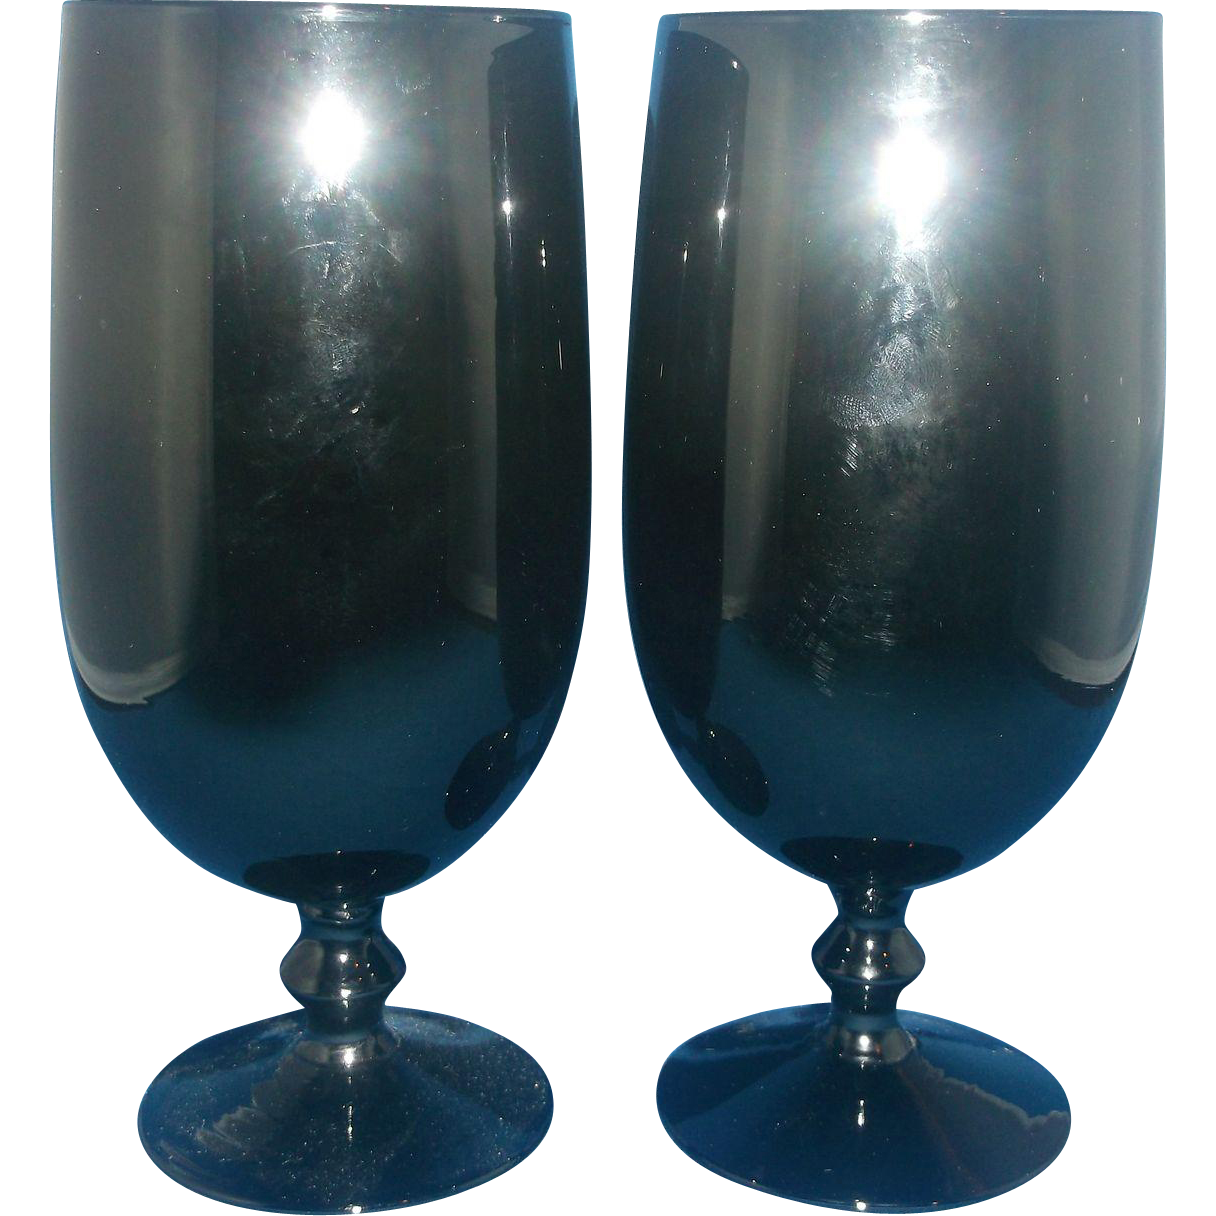 Carlo Moretti Cased Glass Black White Goblets Wafer Stems Pair Made in Italy Murano Art Glass